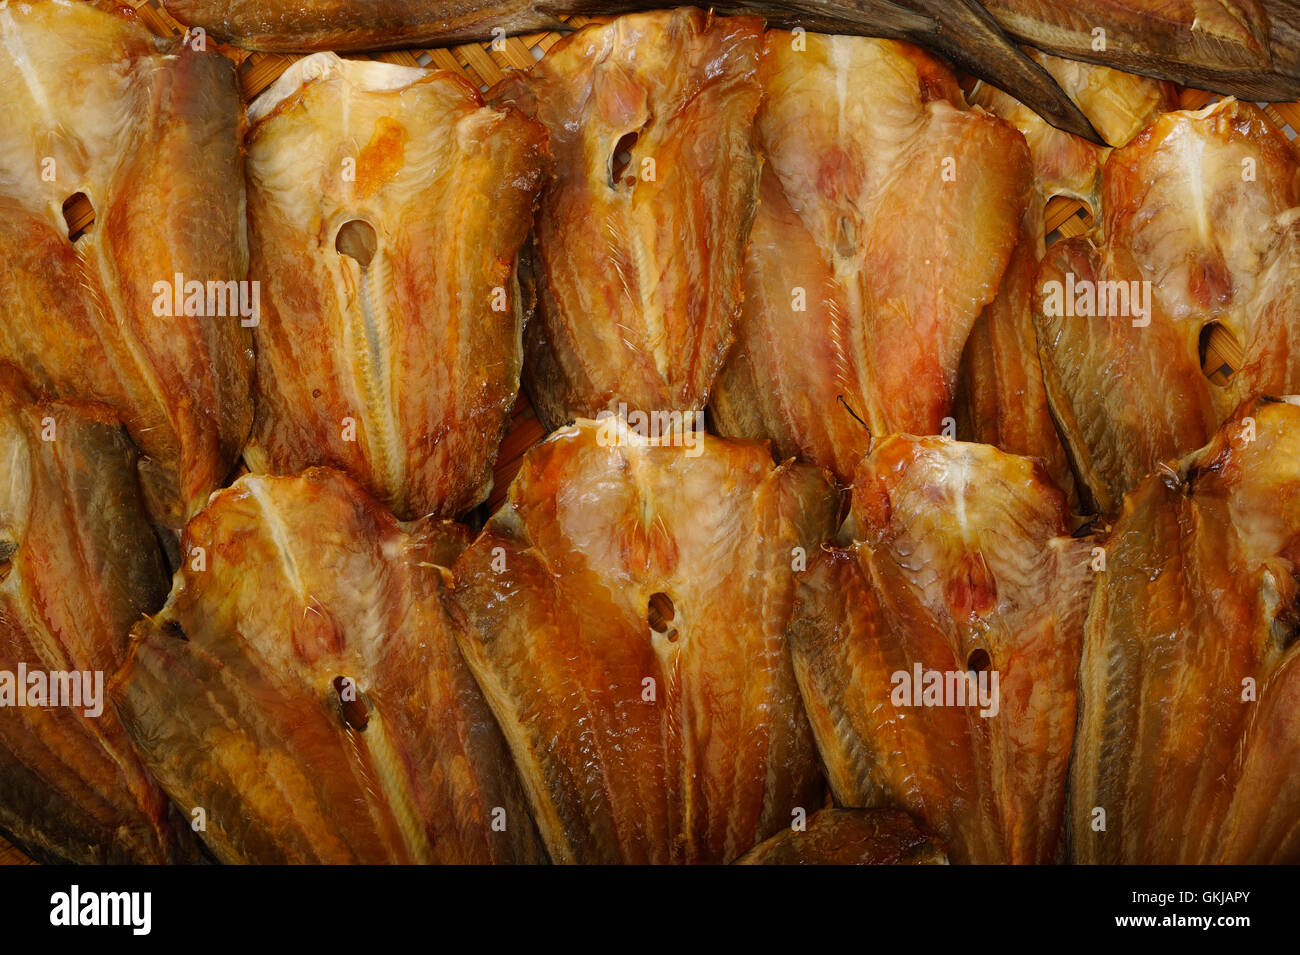 dried salted fish background - Stock Image